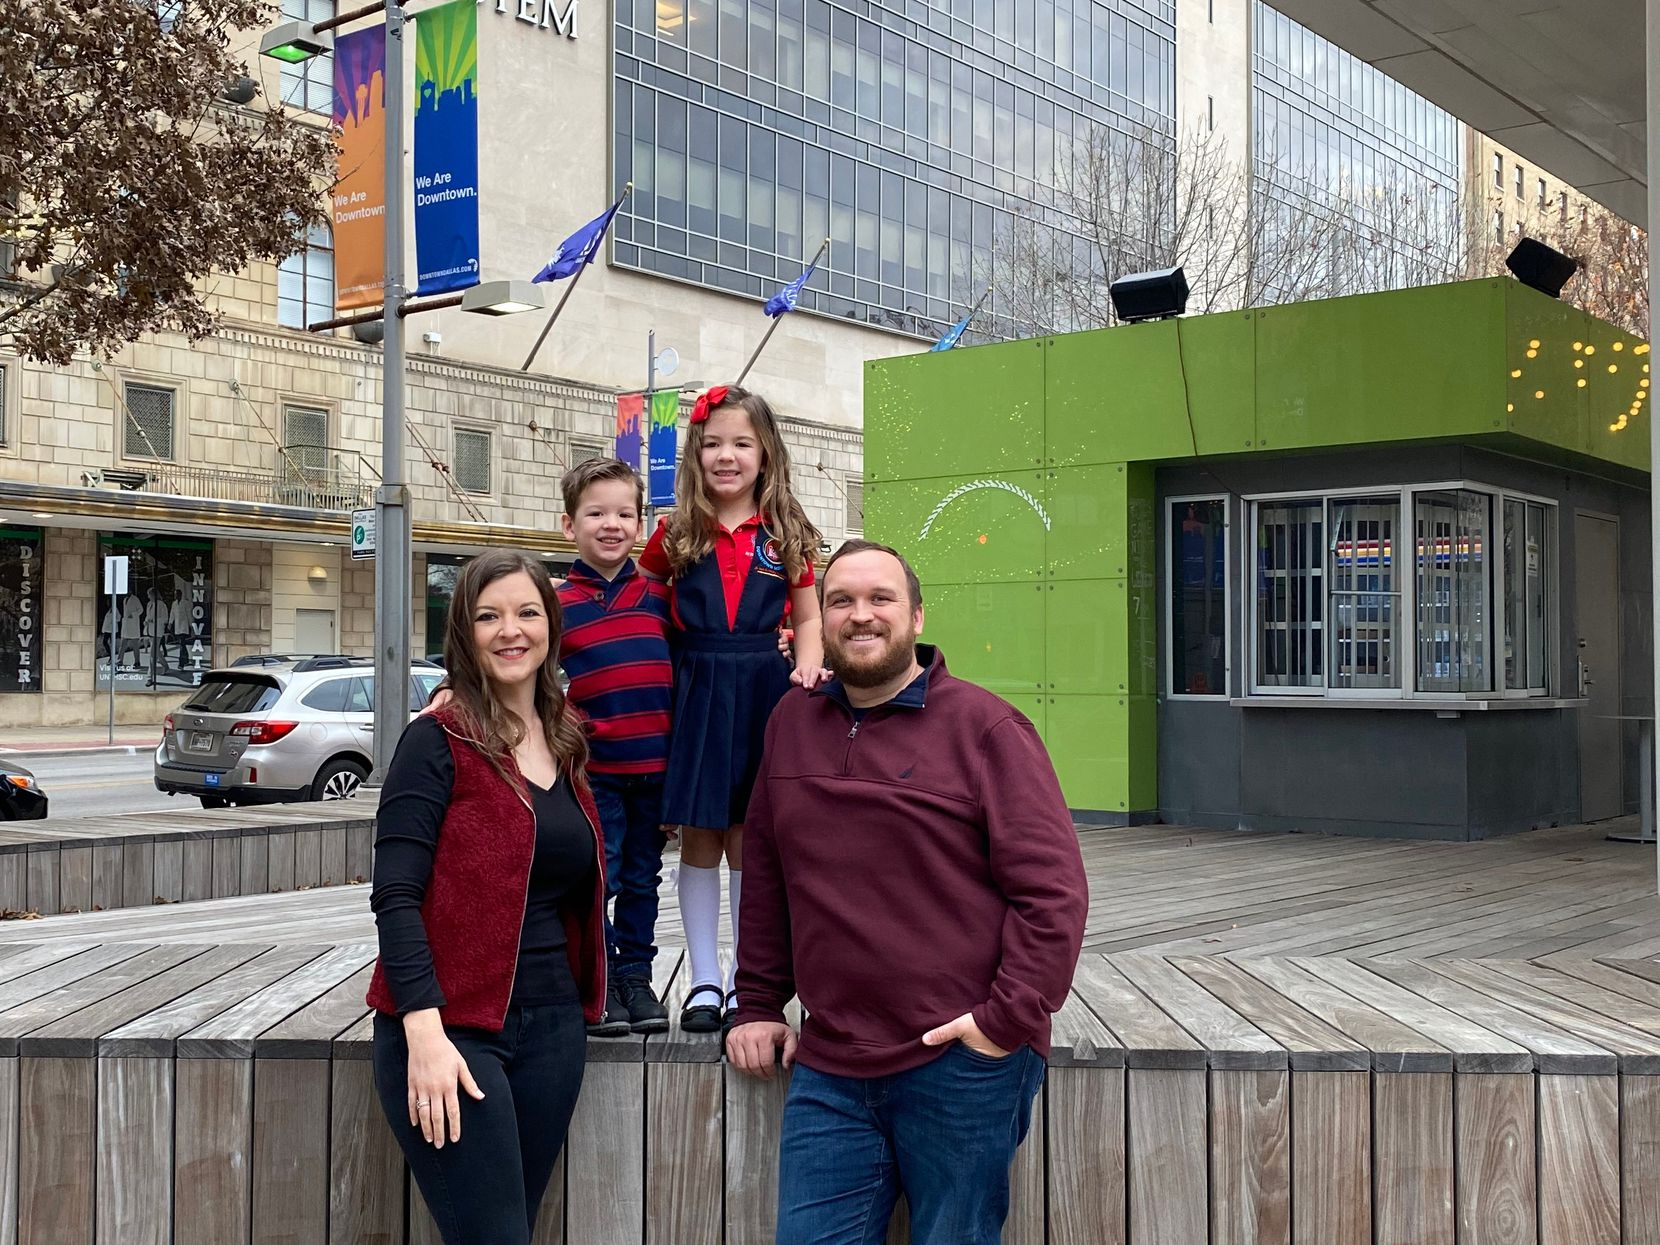 Parents Elizabeth and Chad Thorpe with their 3-year-old son Garrett and 6-year-old daughter Landry, wearing her school uniform, across the street from the Downtown Montessori at Ida B. Wells Academy. Landry is among the first class of kindergartners at the new school.